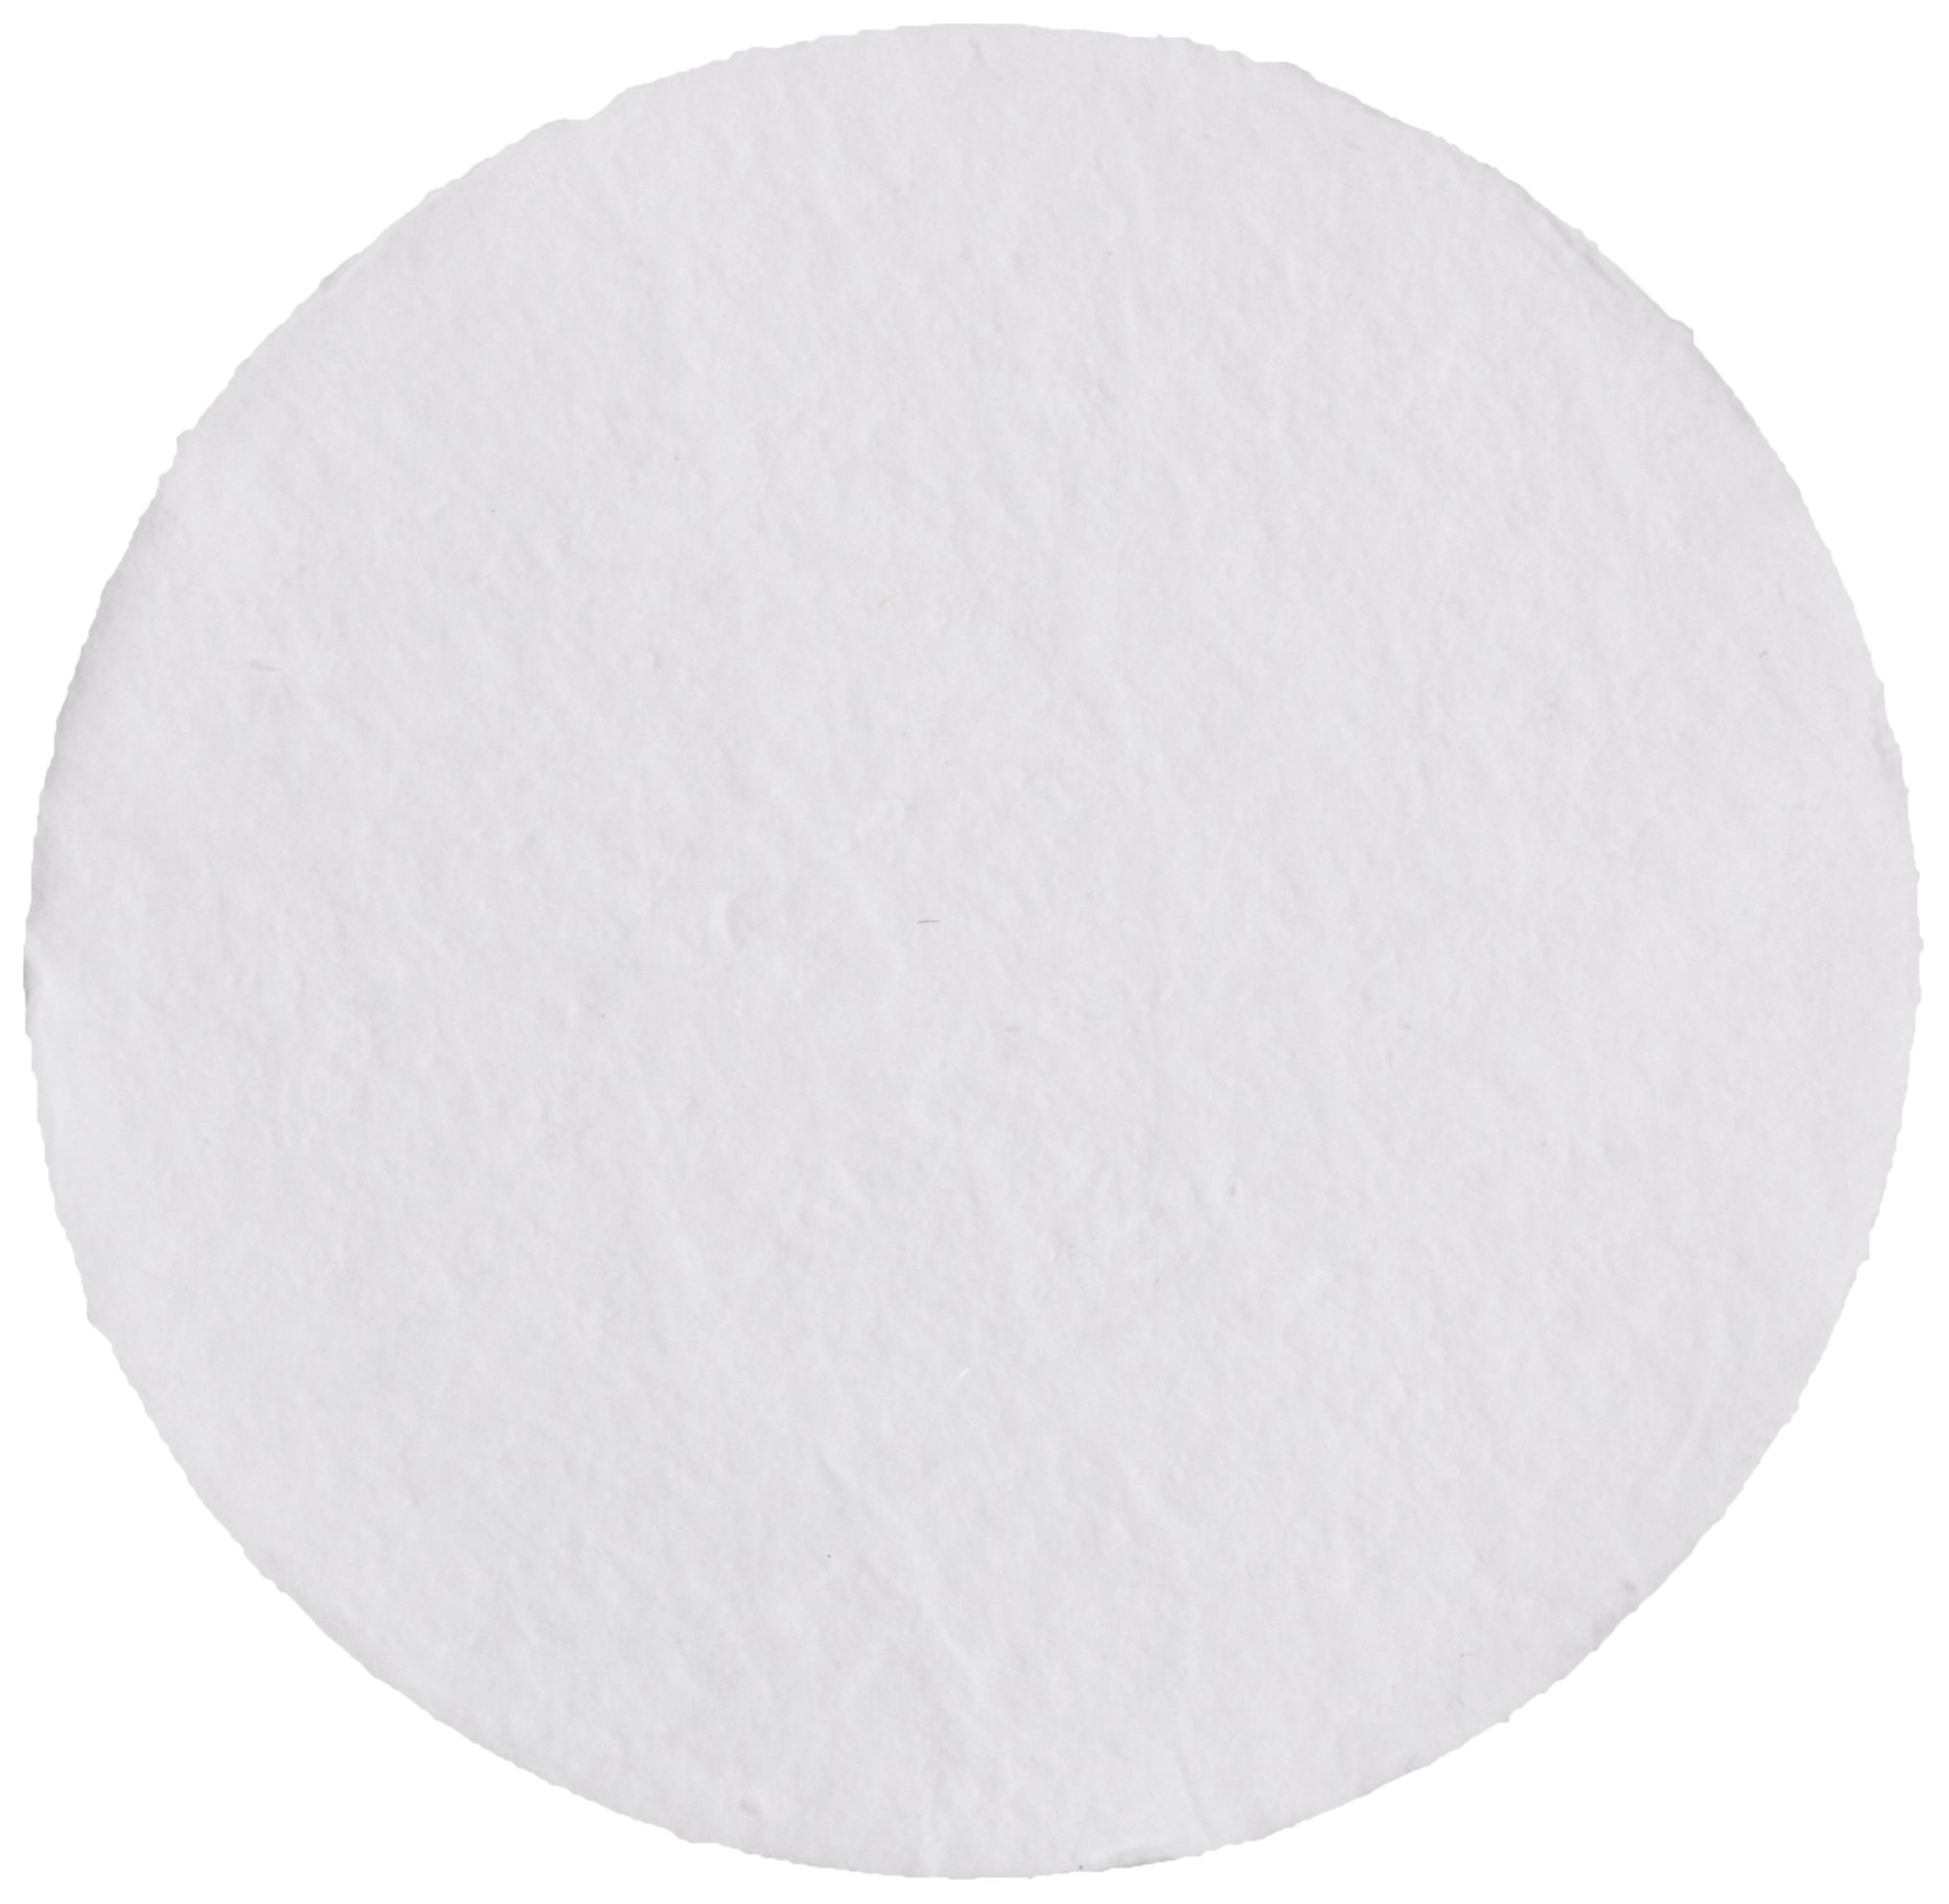 Whatman 1821-047 Glass Microfiber Binder Free Filter, 1 Micron, 12 s/100mL Flow Rate, Grade GF/B, 4.7cm Diameter (Pack of 100) by Whatman